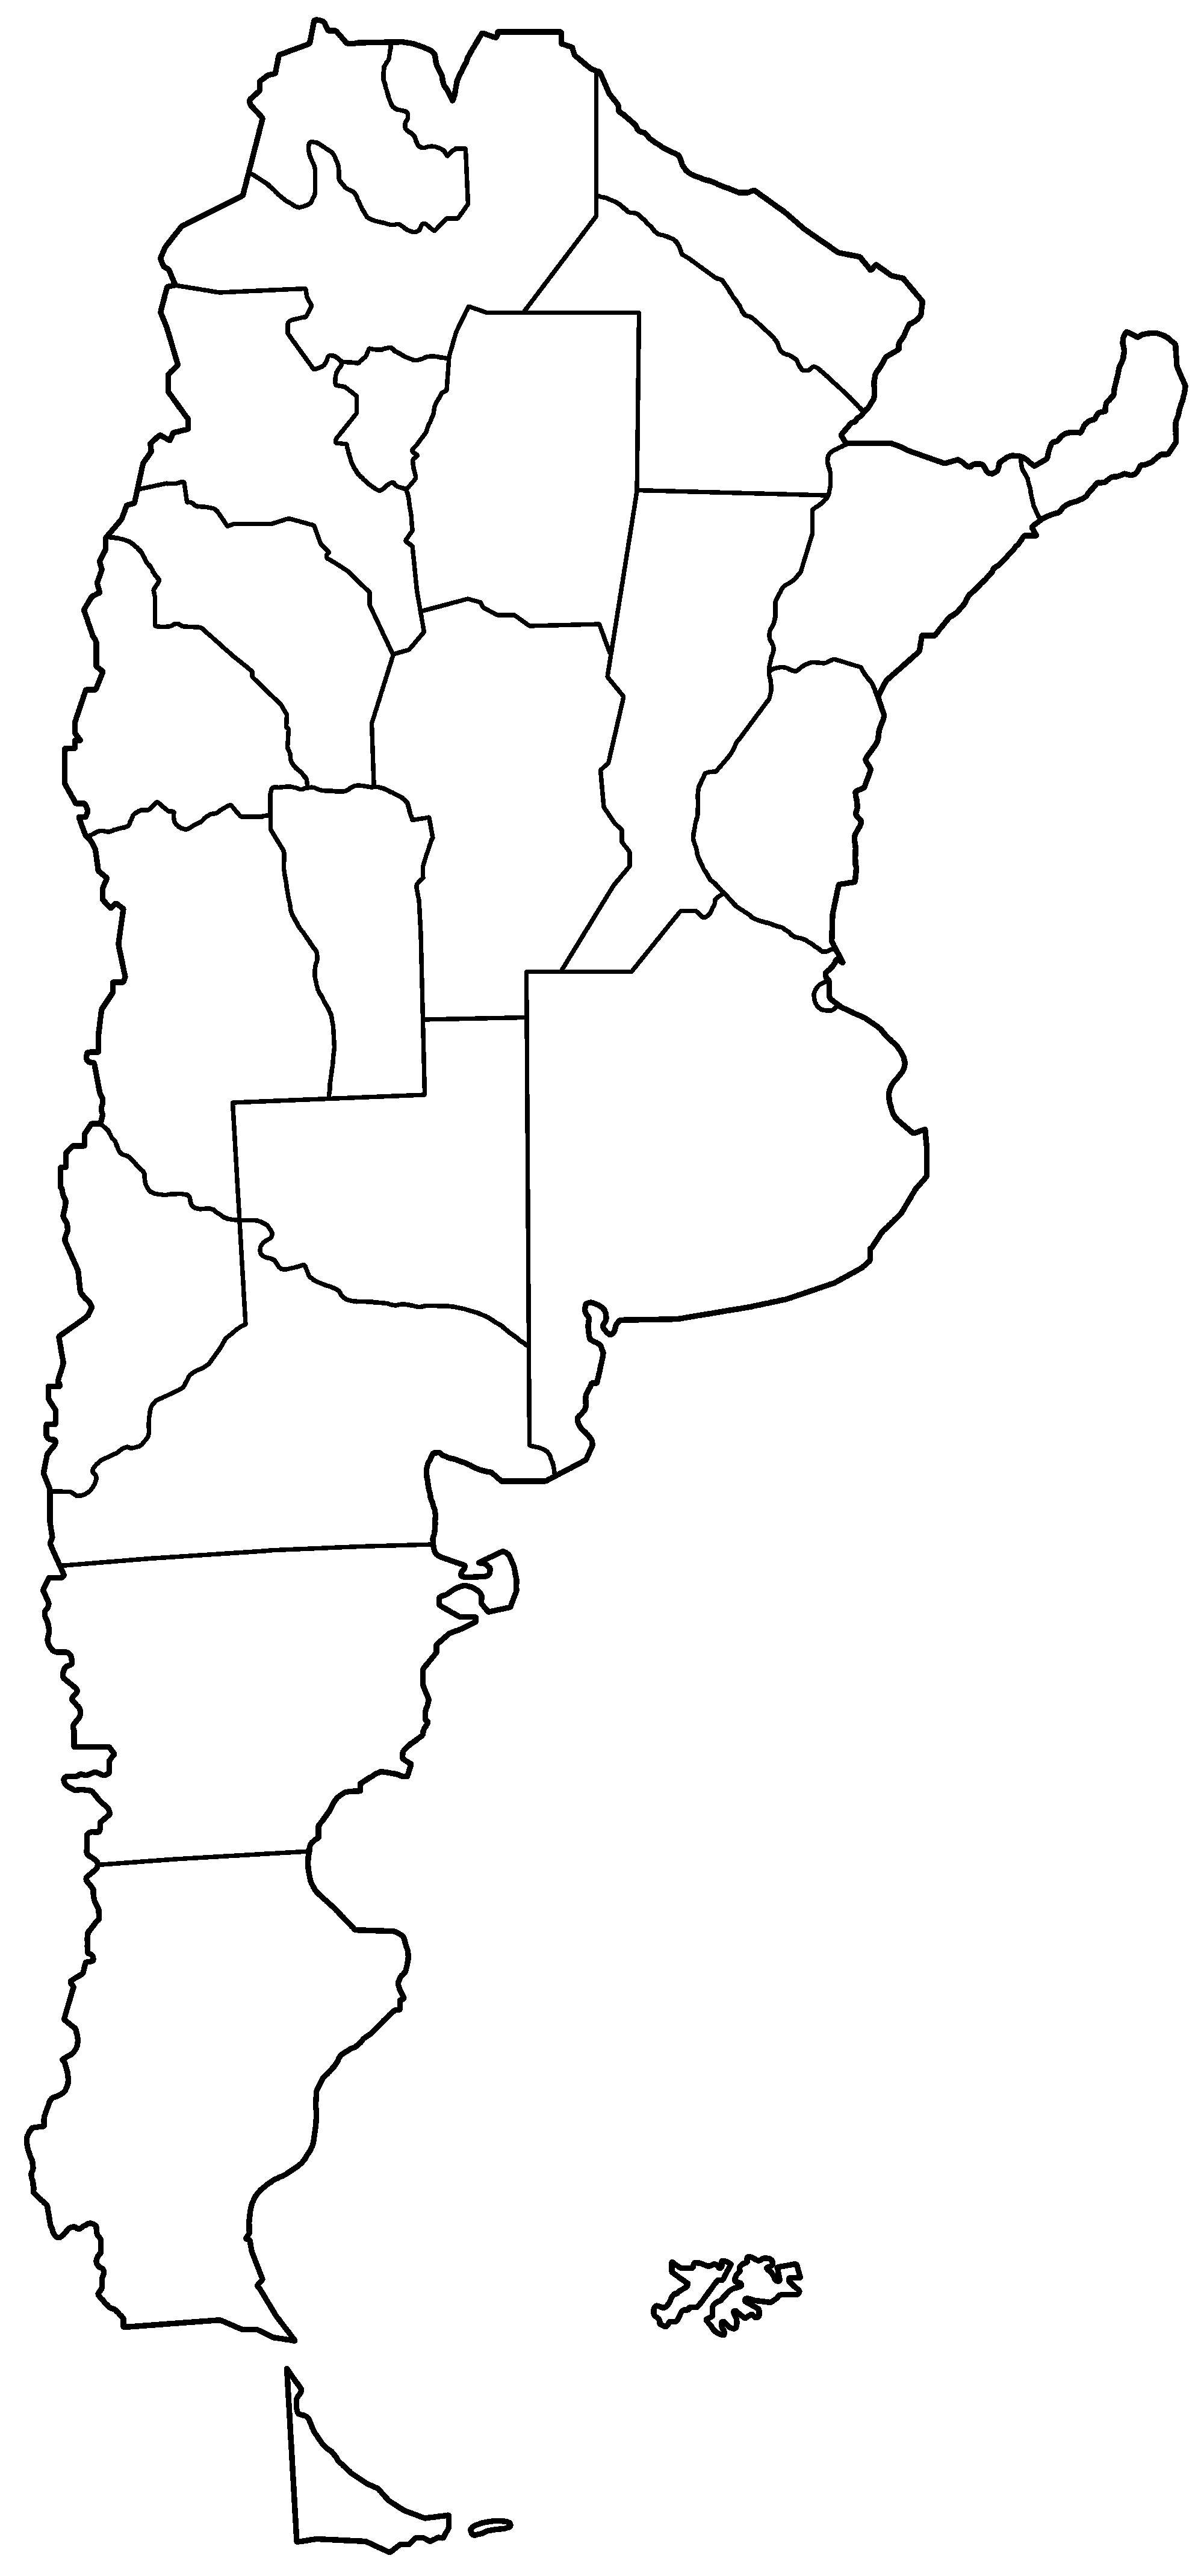 Argentina Provinces Blank Large Map M Pinterest Argentina - Argentina map outline